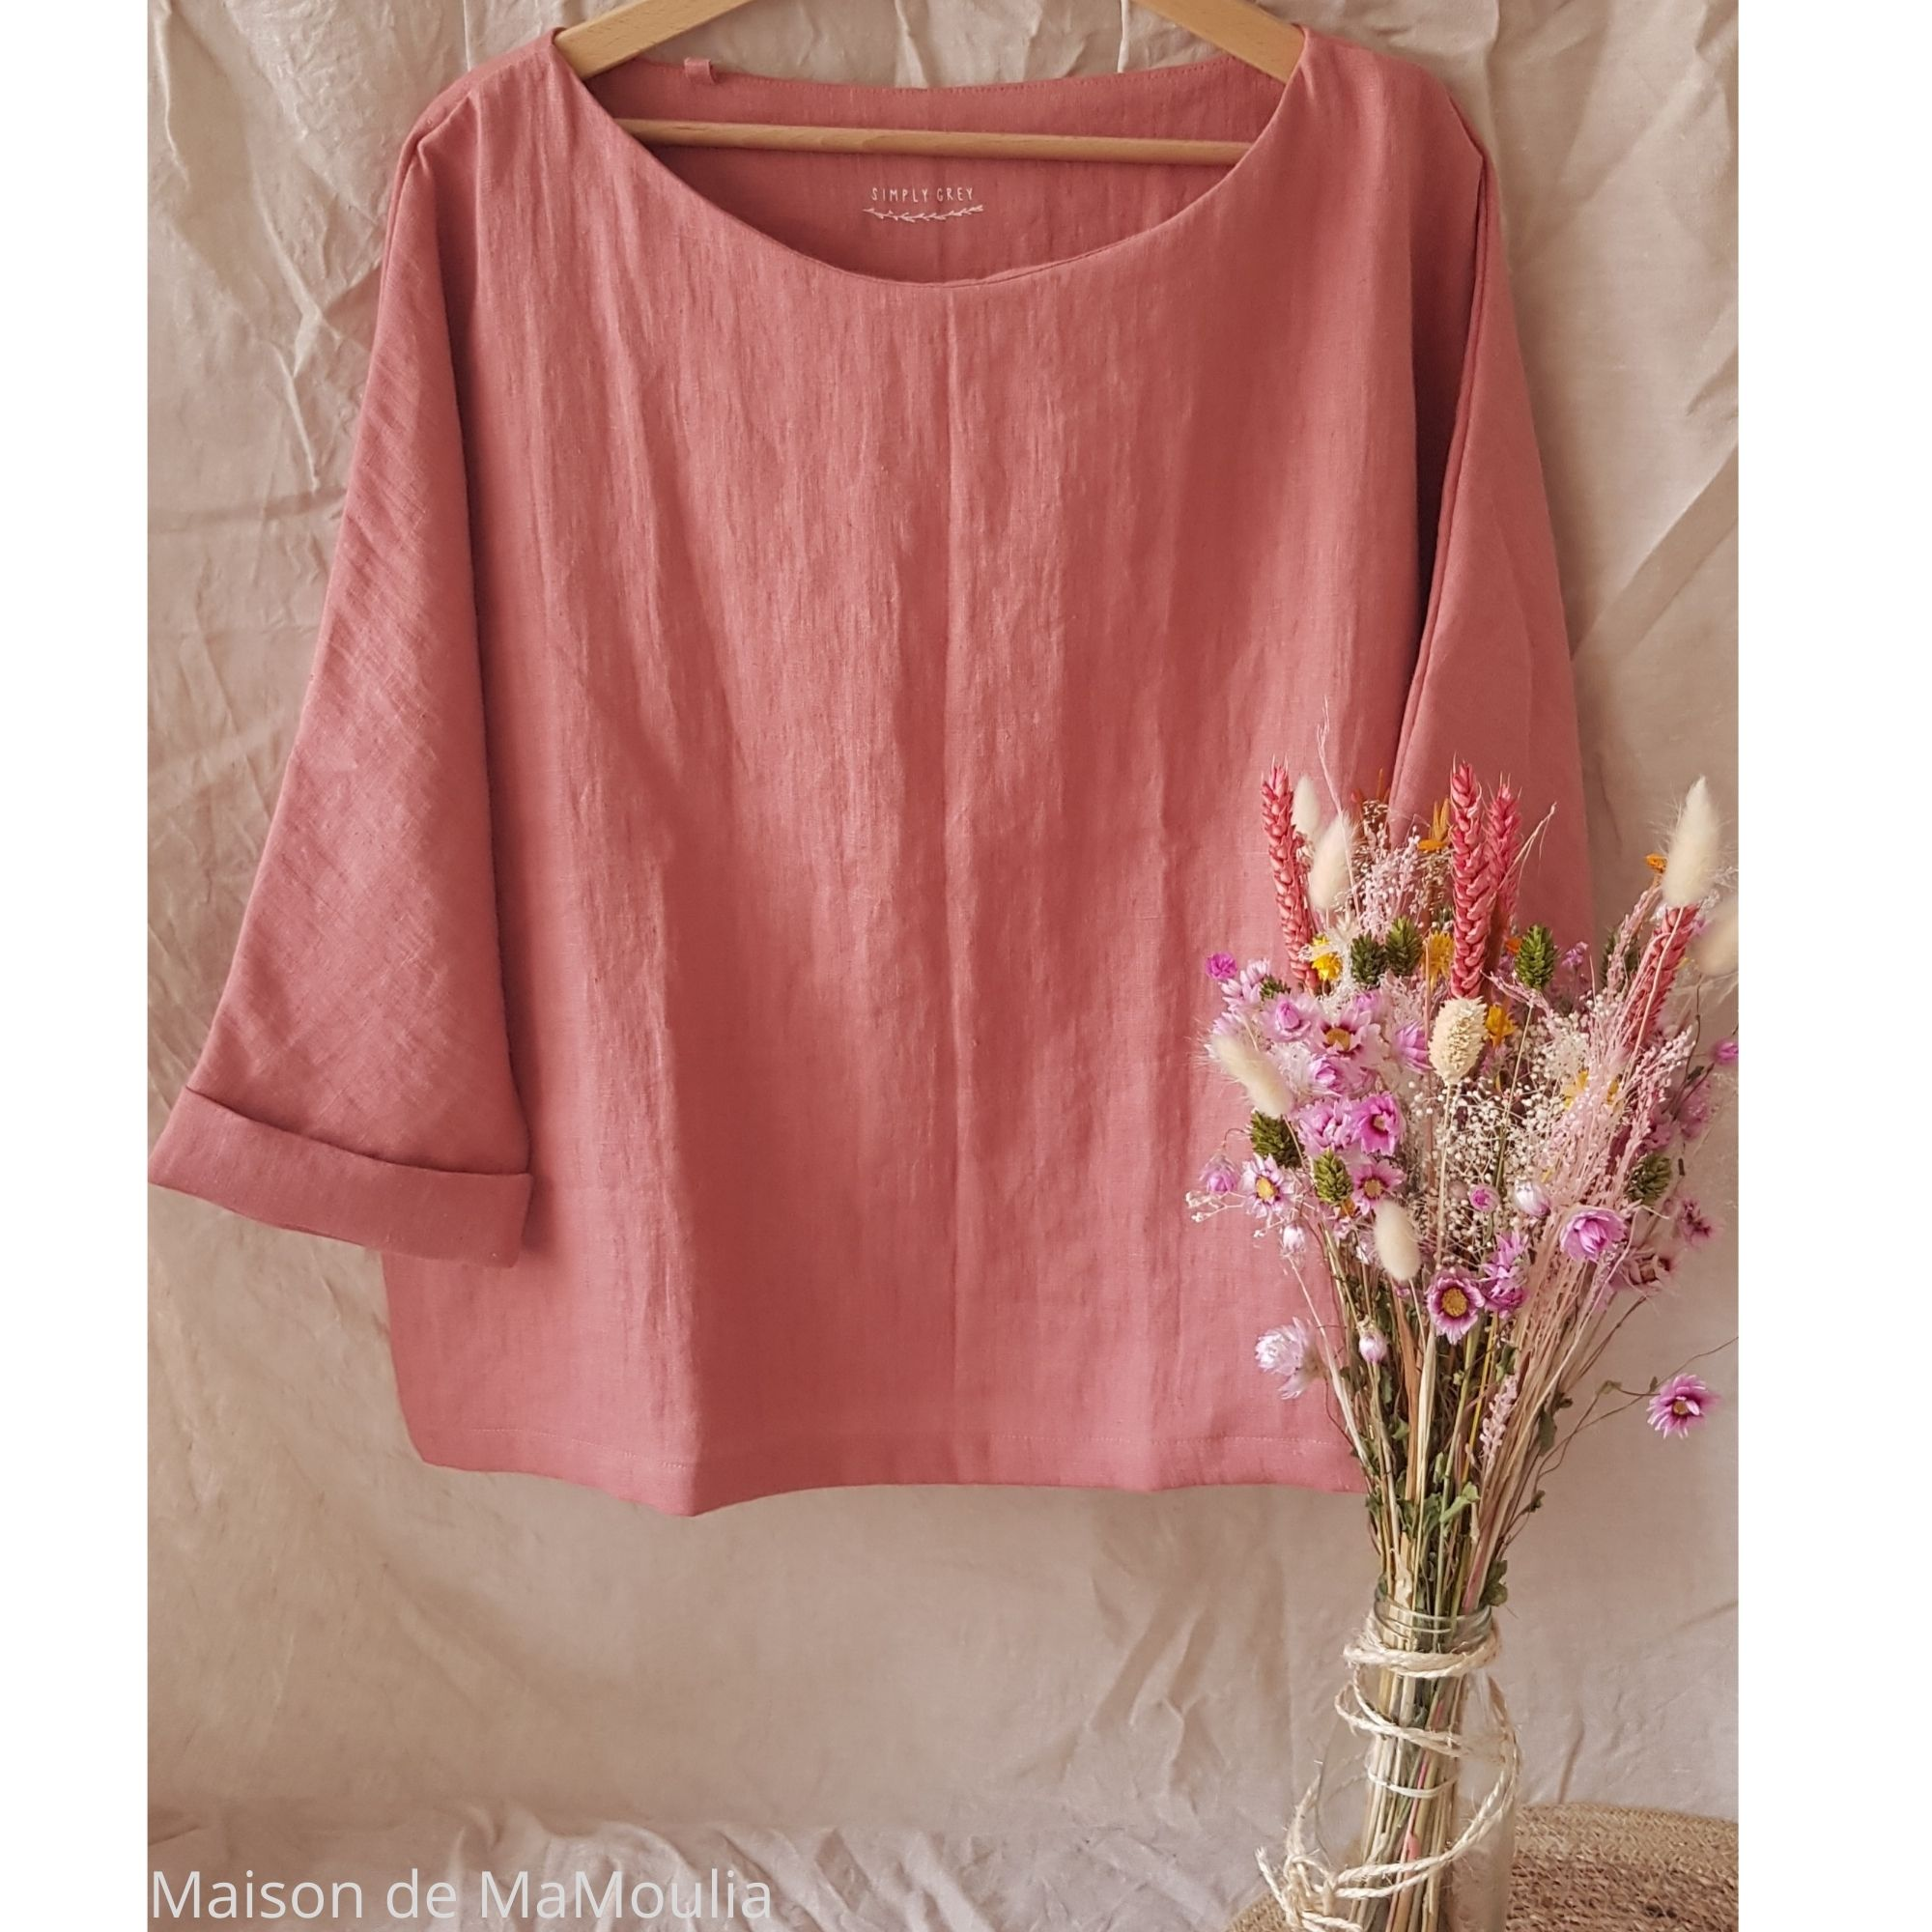 SIMPLY GREY - Blouse oversize - 100% lin lavé - Rose saumon